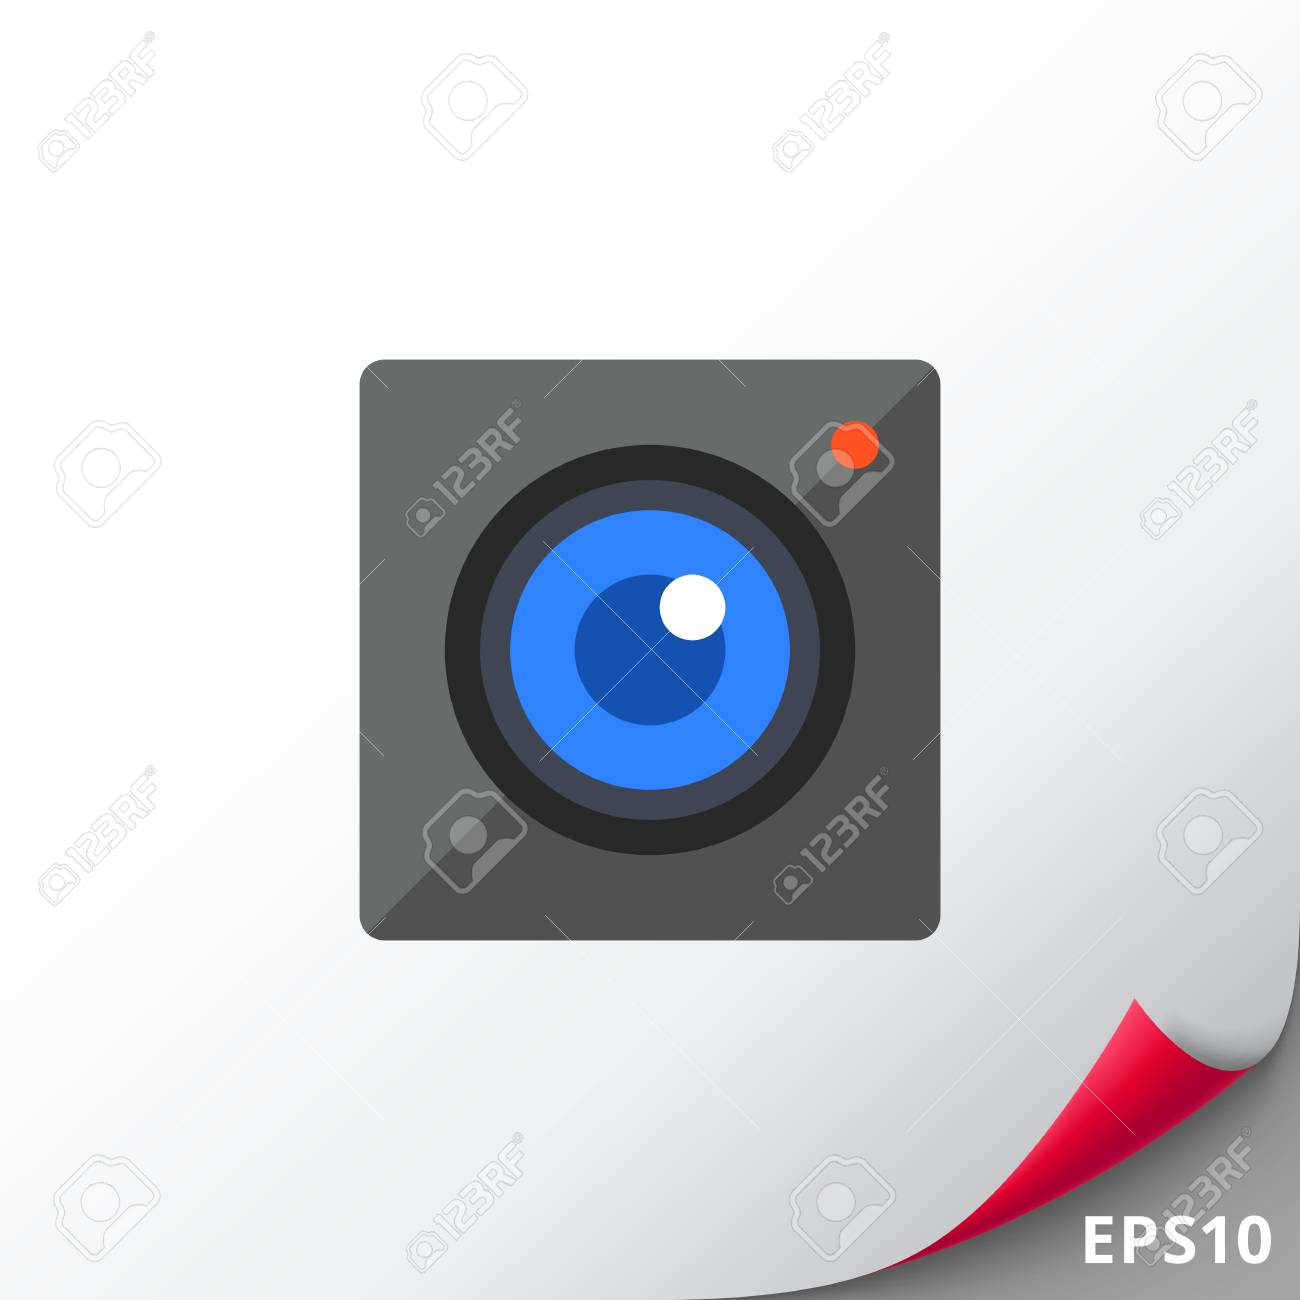 Icon of camera  Instagram icon  Social networking, shooting,